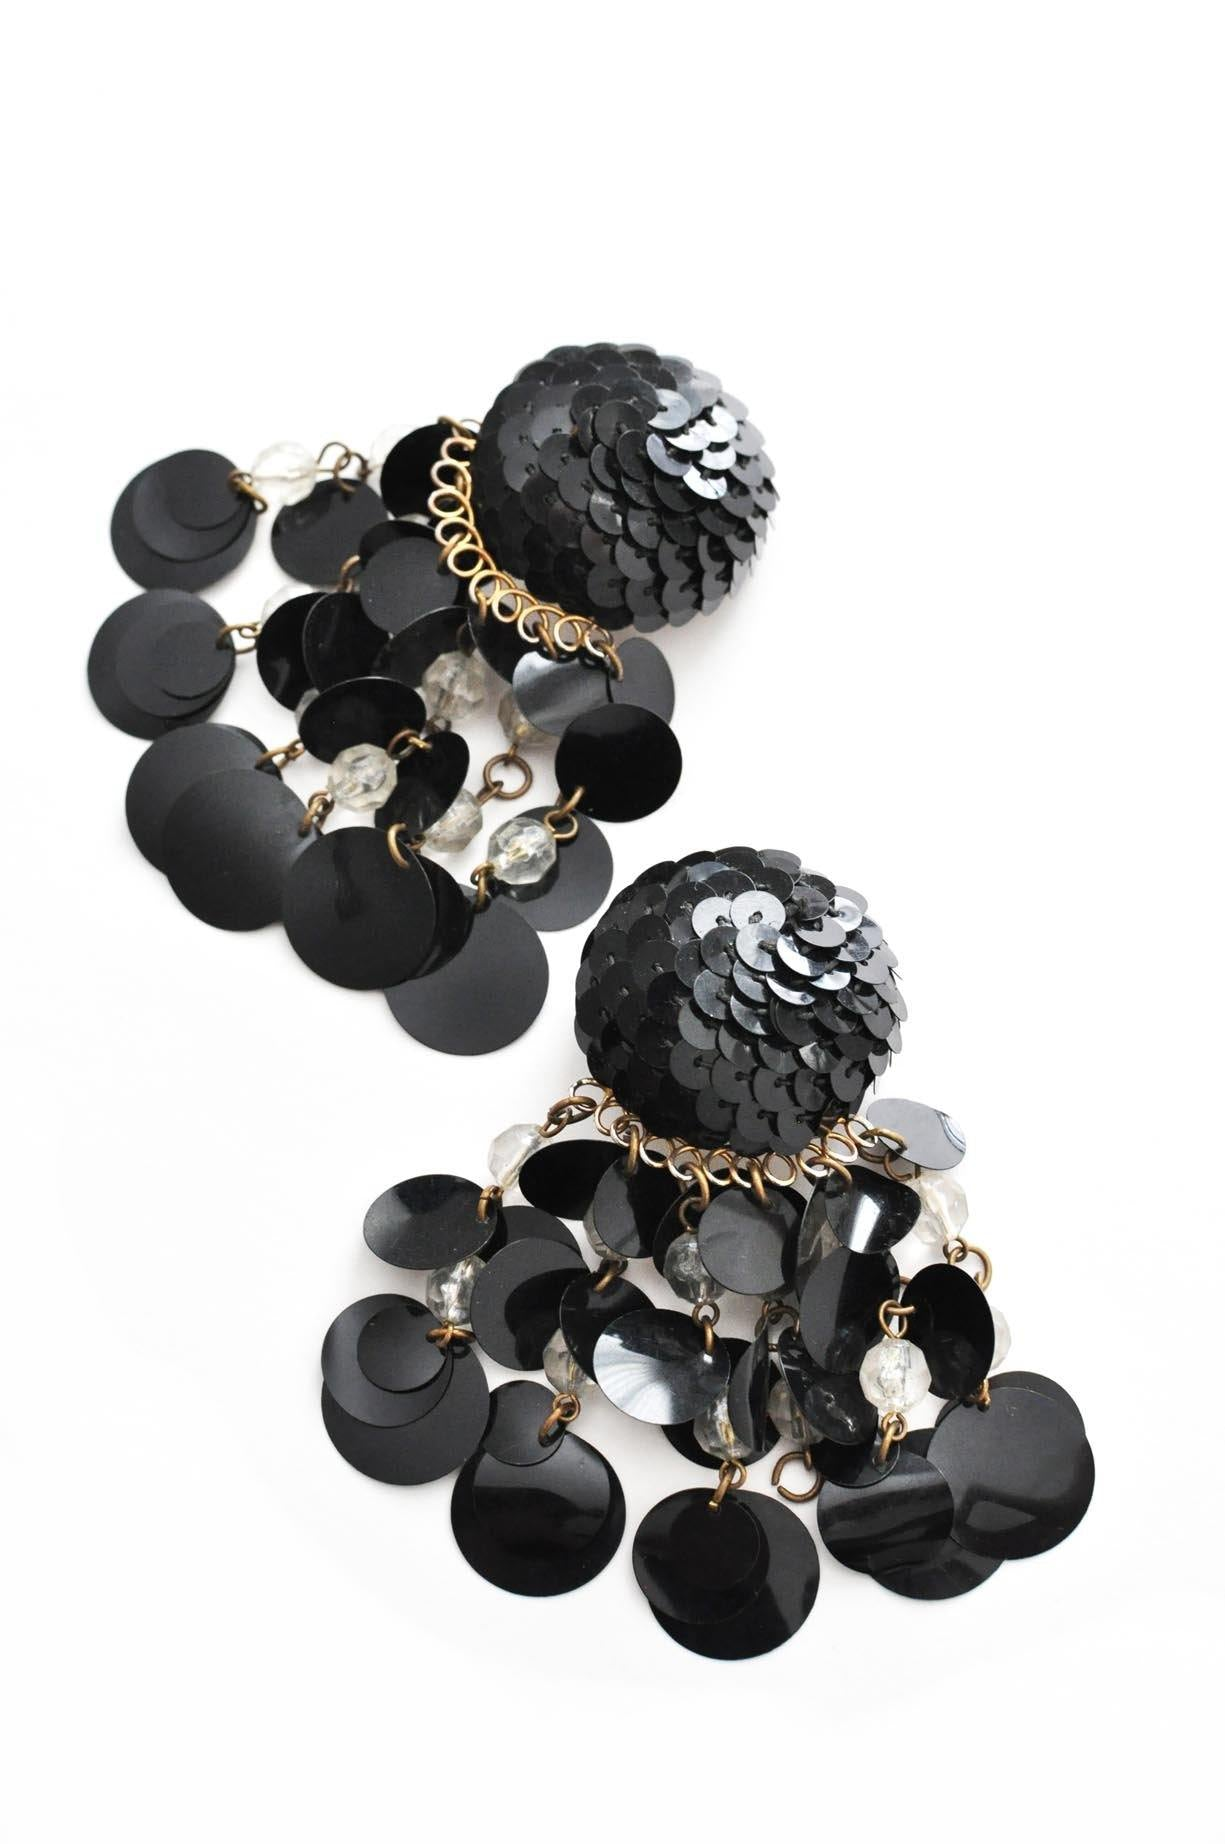 Vintage black sequin statement earrings from Sweet & Spark.